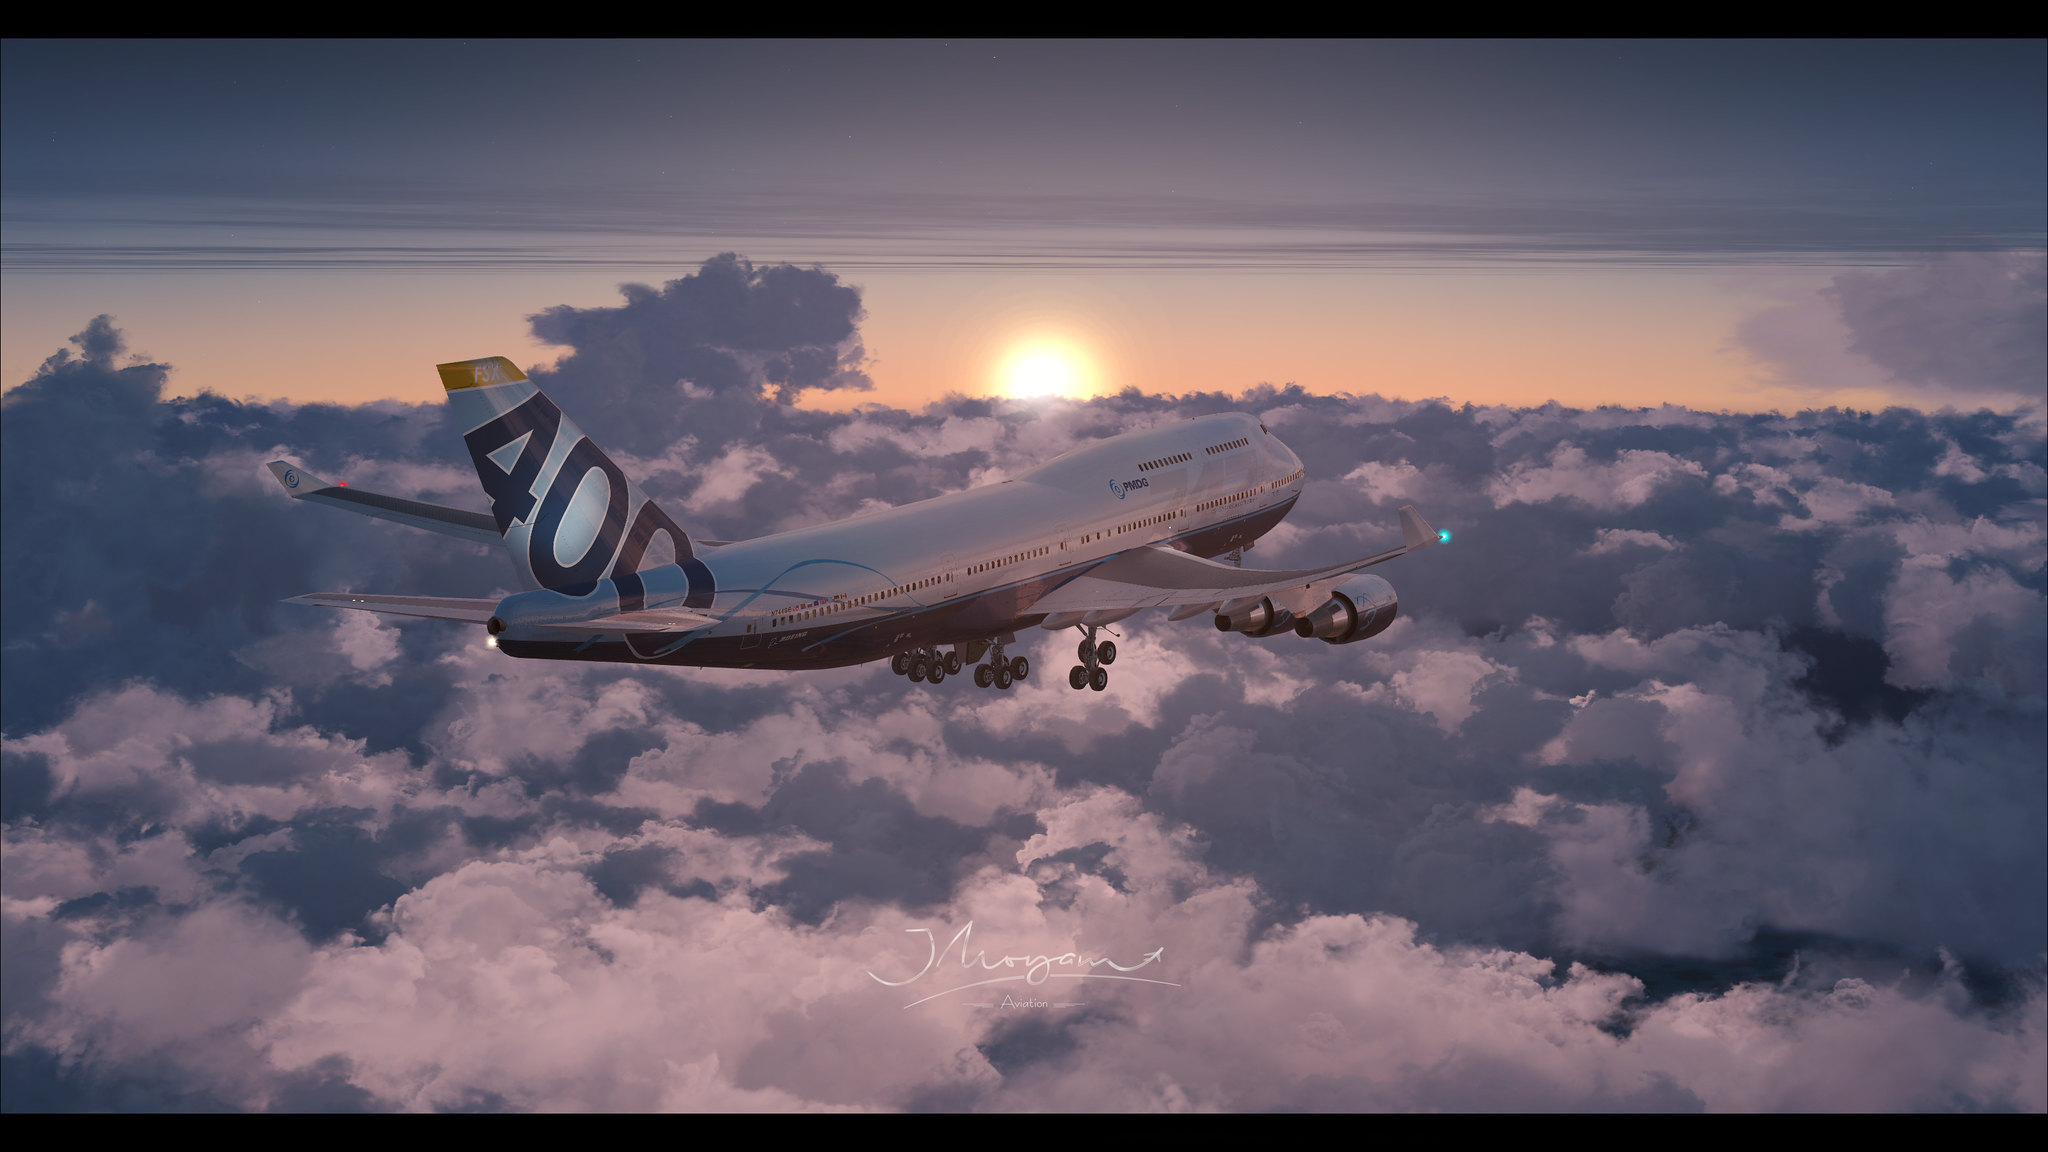 Pmdg 747 400 Livery Download Chrome - prioritydiscount